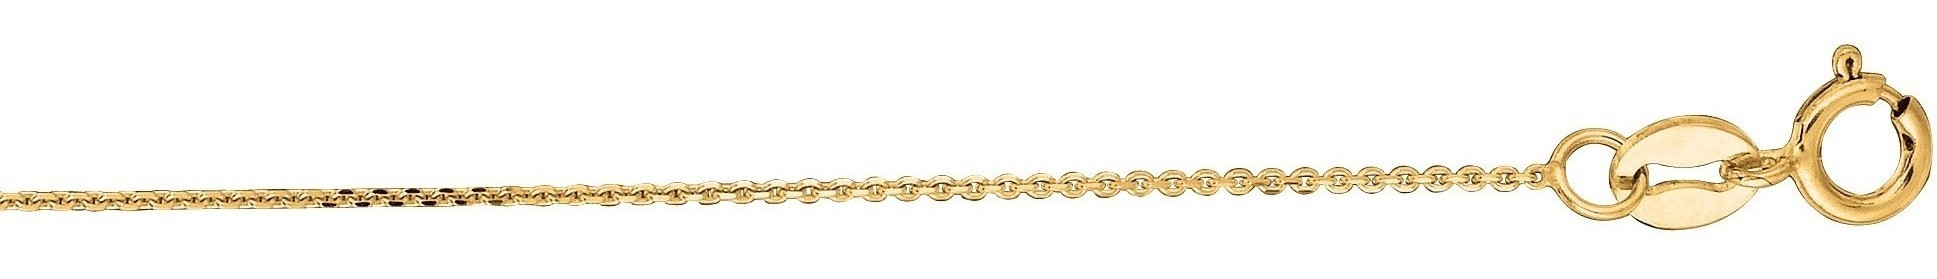 "16"" 14K Yellow Gold 0.5mm (0.02"") Polished Diamond Cut Cable Link Chain w/ Spring Ring Clasp"